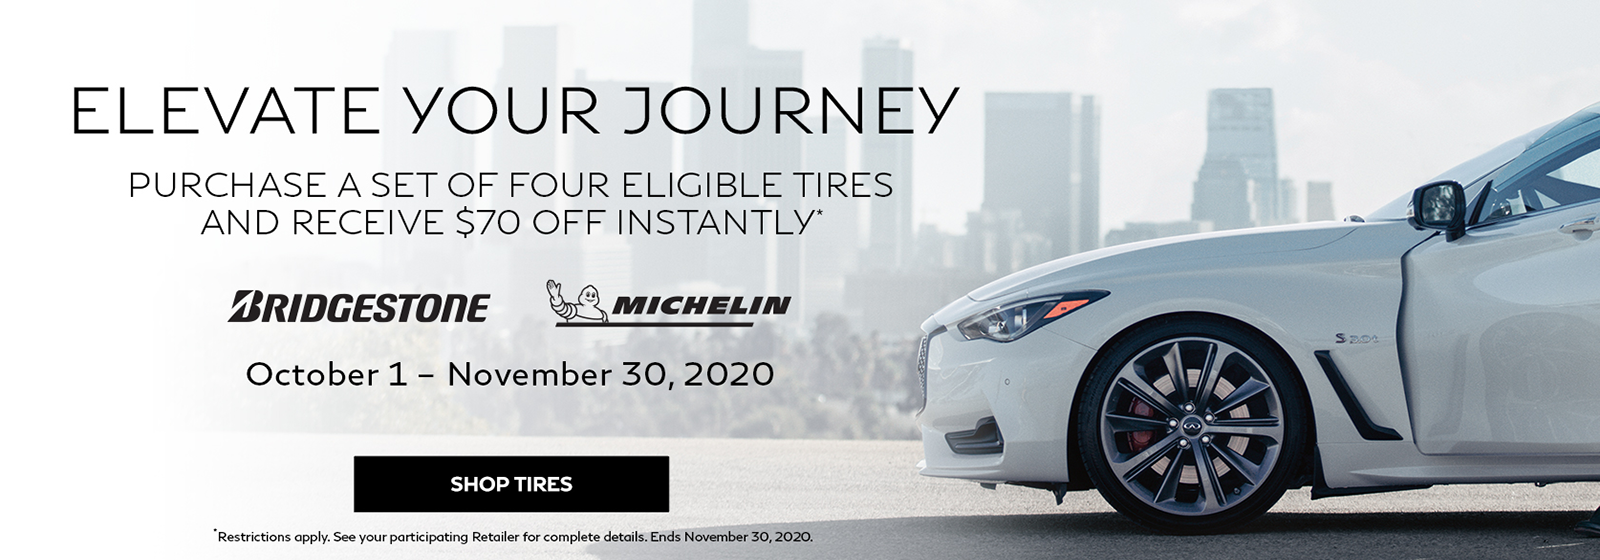 Purchase 4 eligible tires and get $70 off instantly